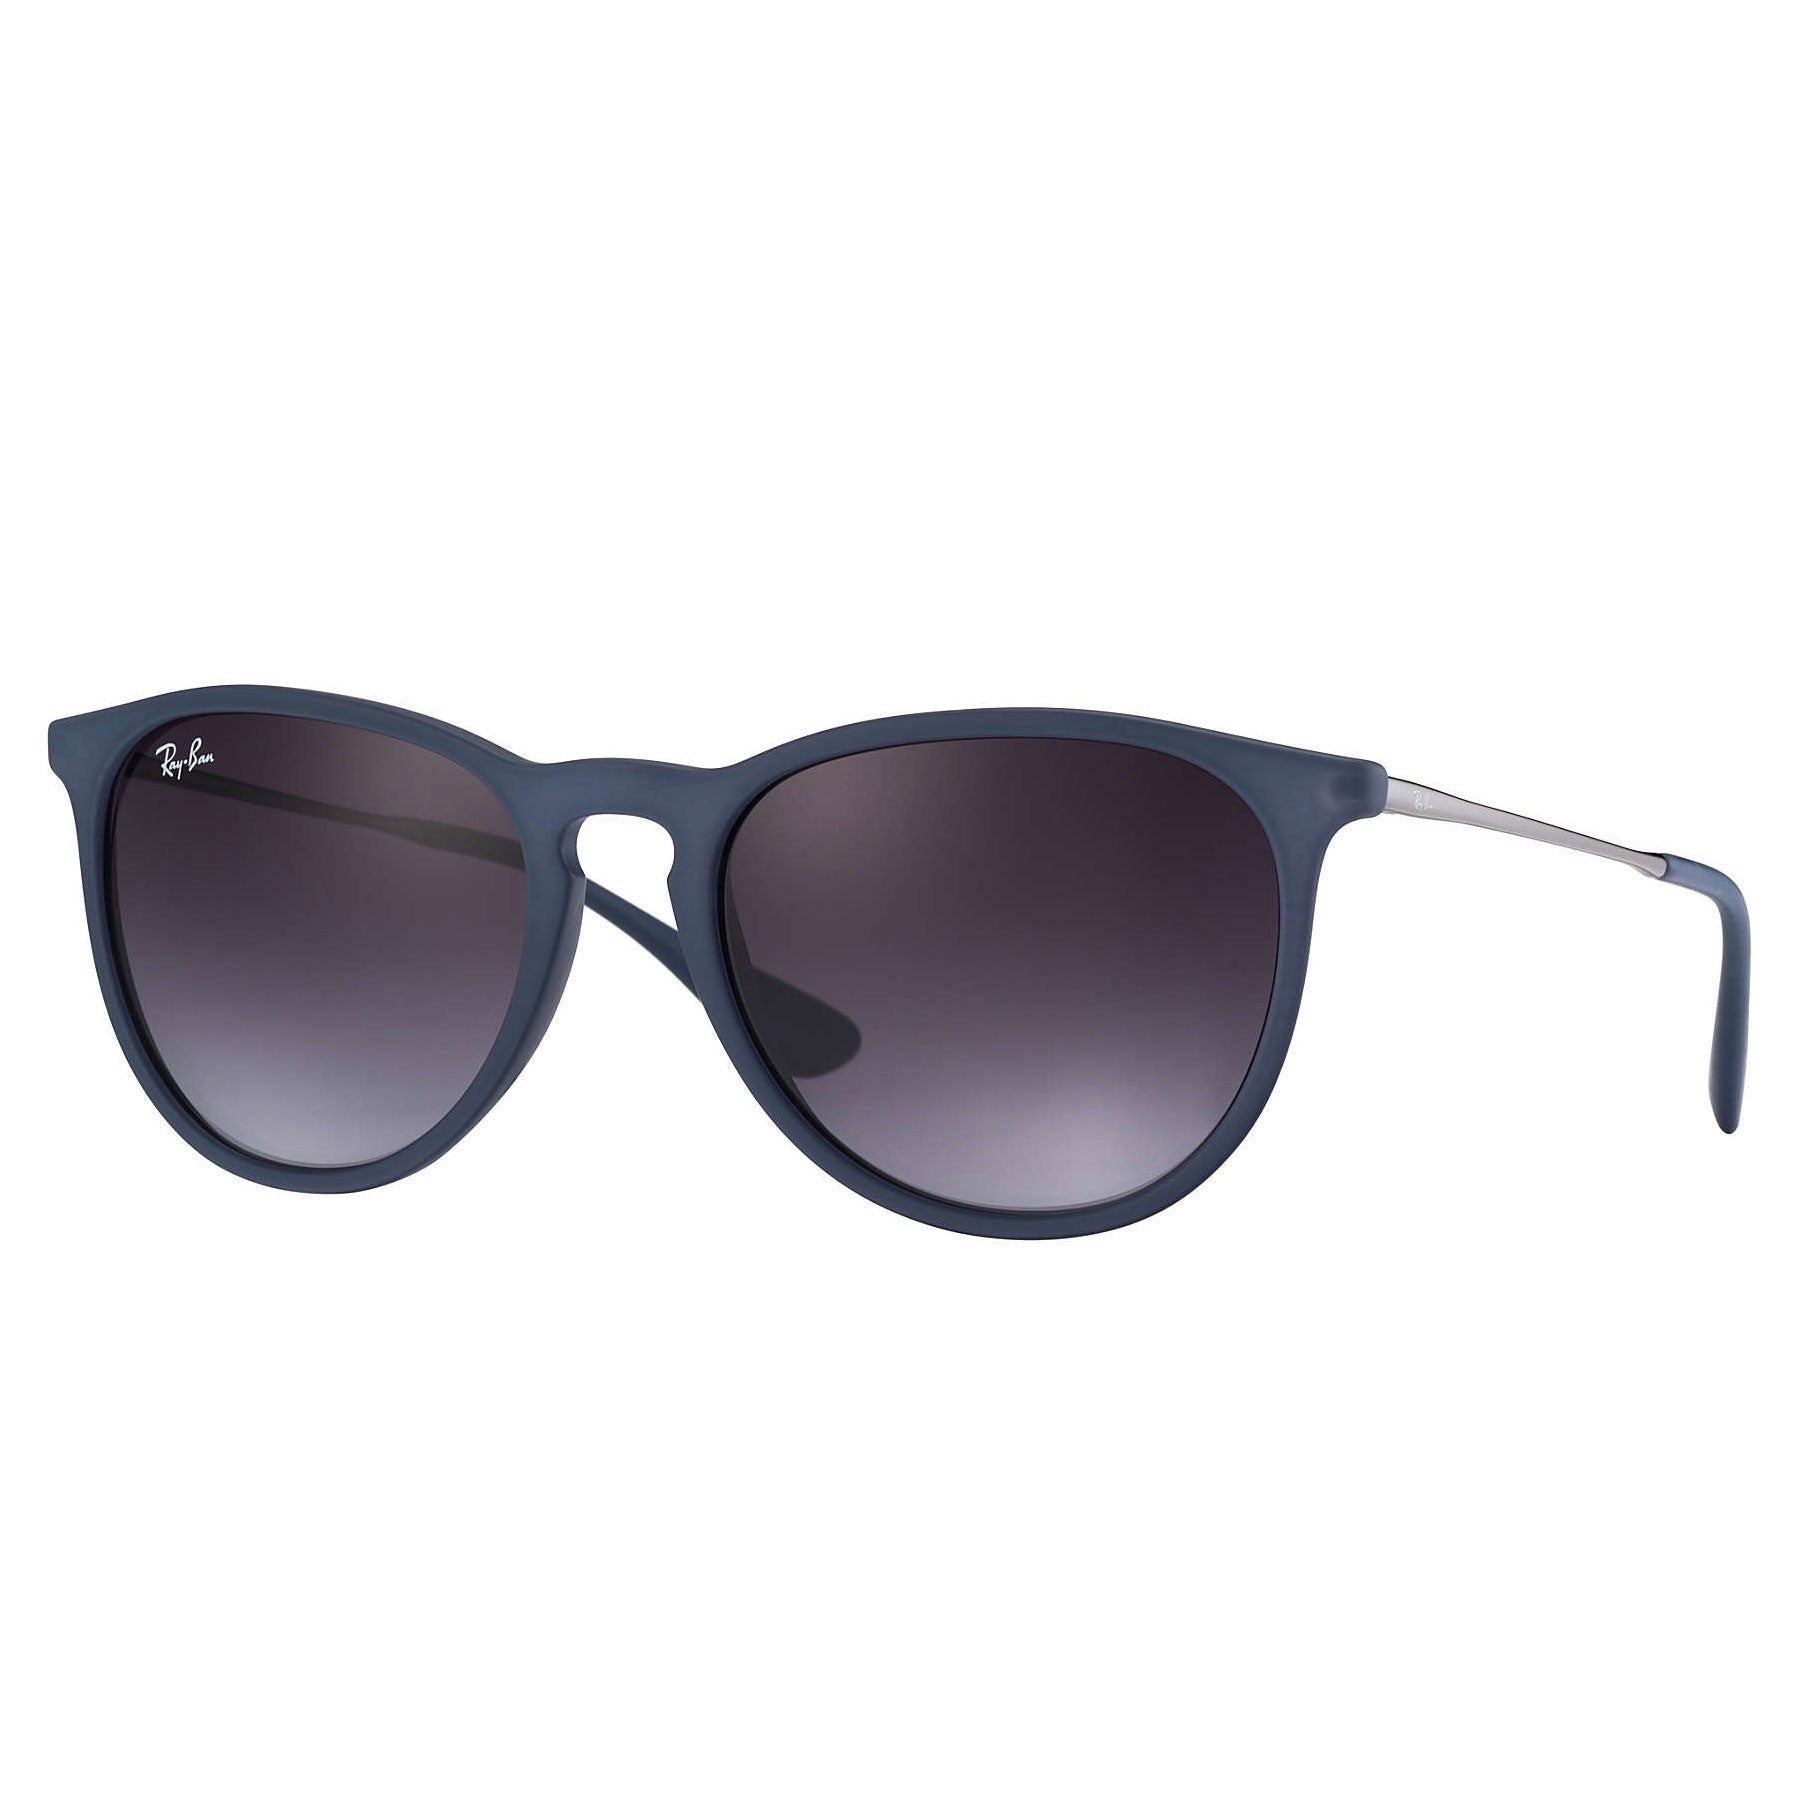 da1e9502c8 Ray-Ban RB4171 Erica Color Mix Sunglasses Blue  Gunmetal Grey Gradient 54mm  - Blue